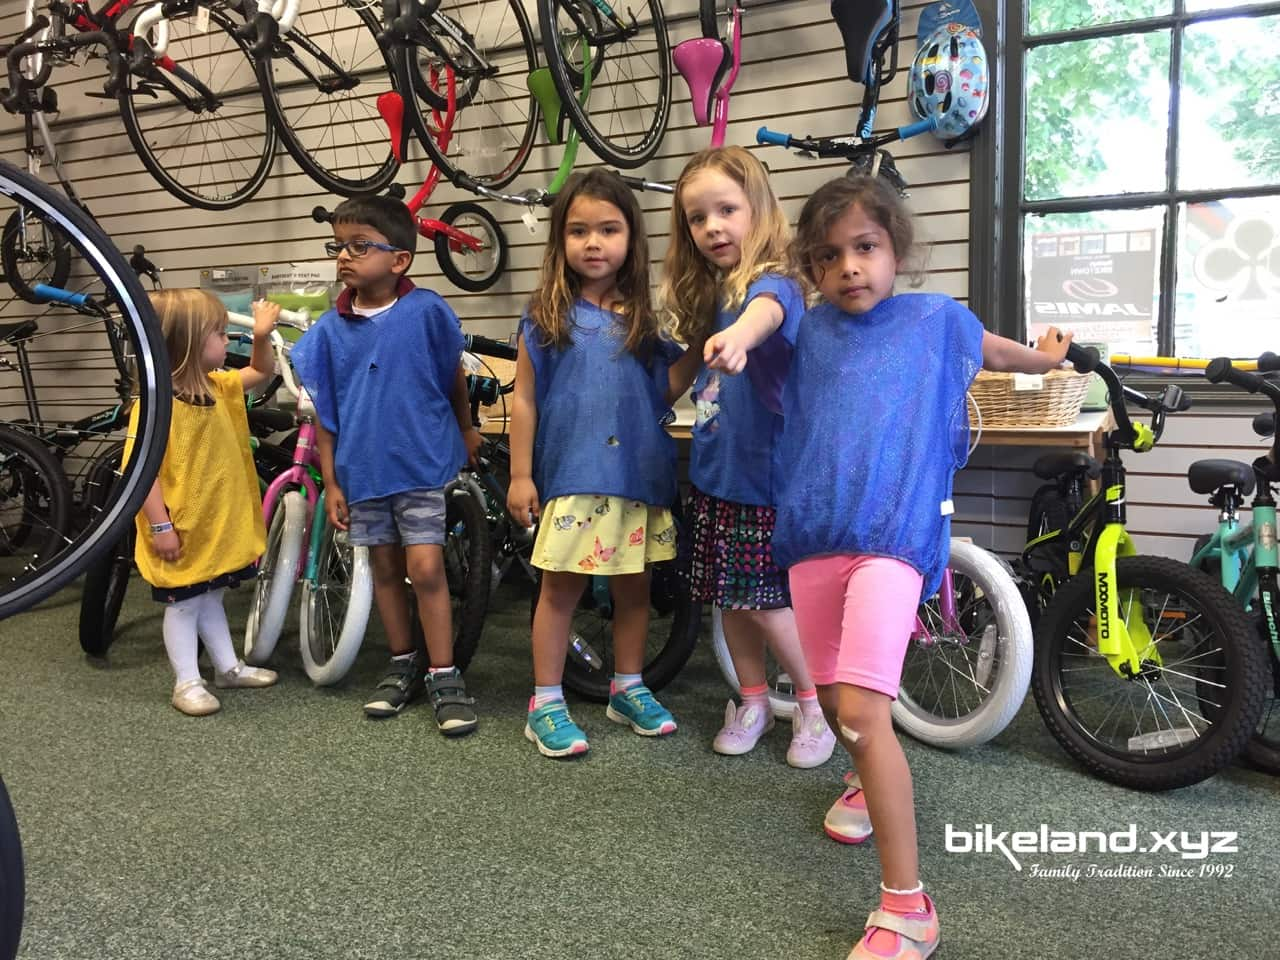 Kids checking out kids bikes at Bikeland.